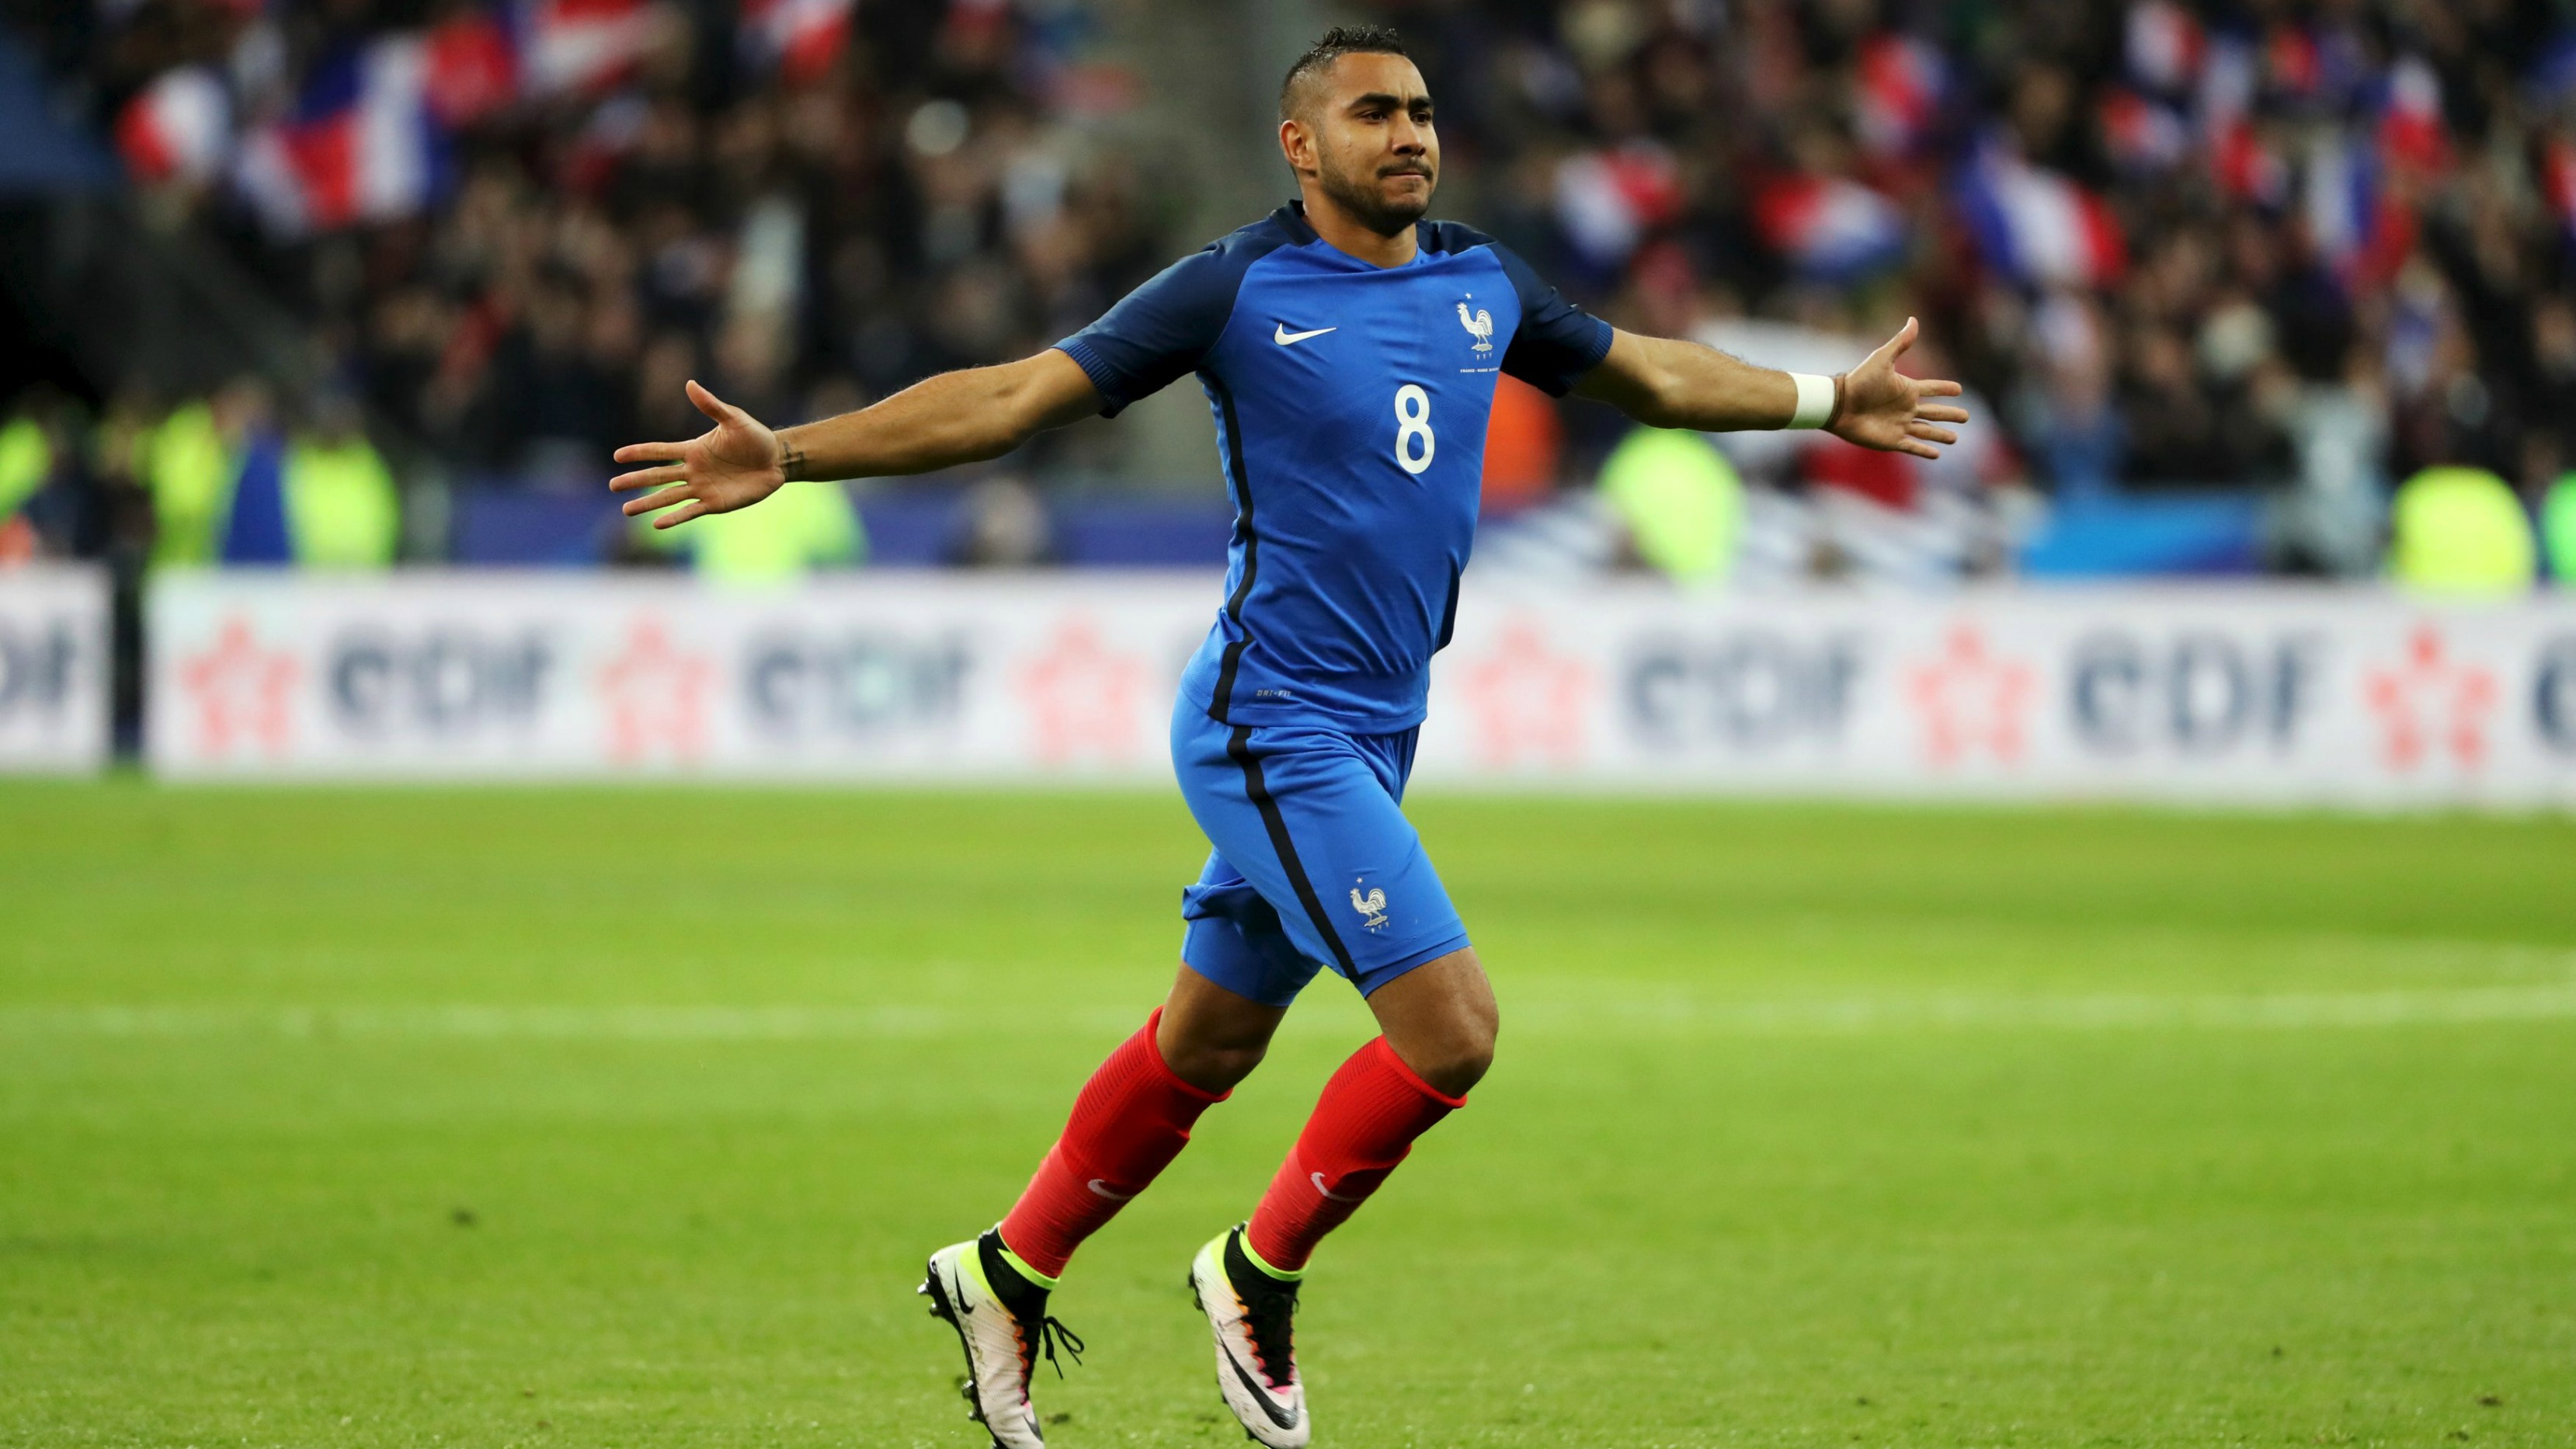 Dimitri Payet works his free kick magic for France now, too